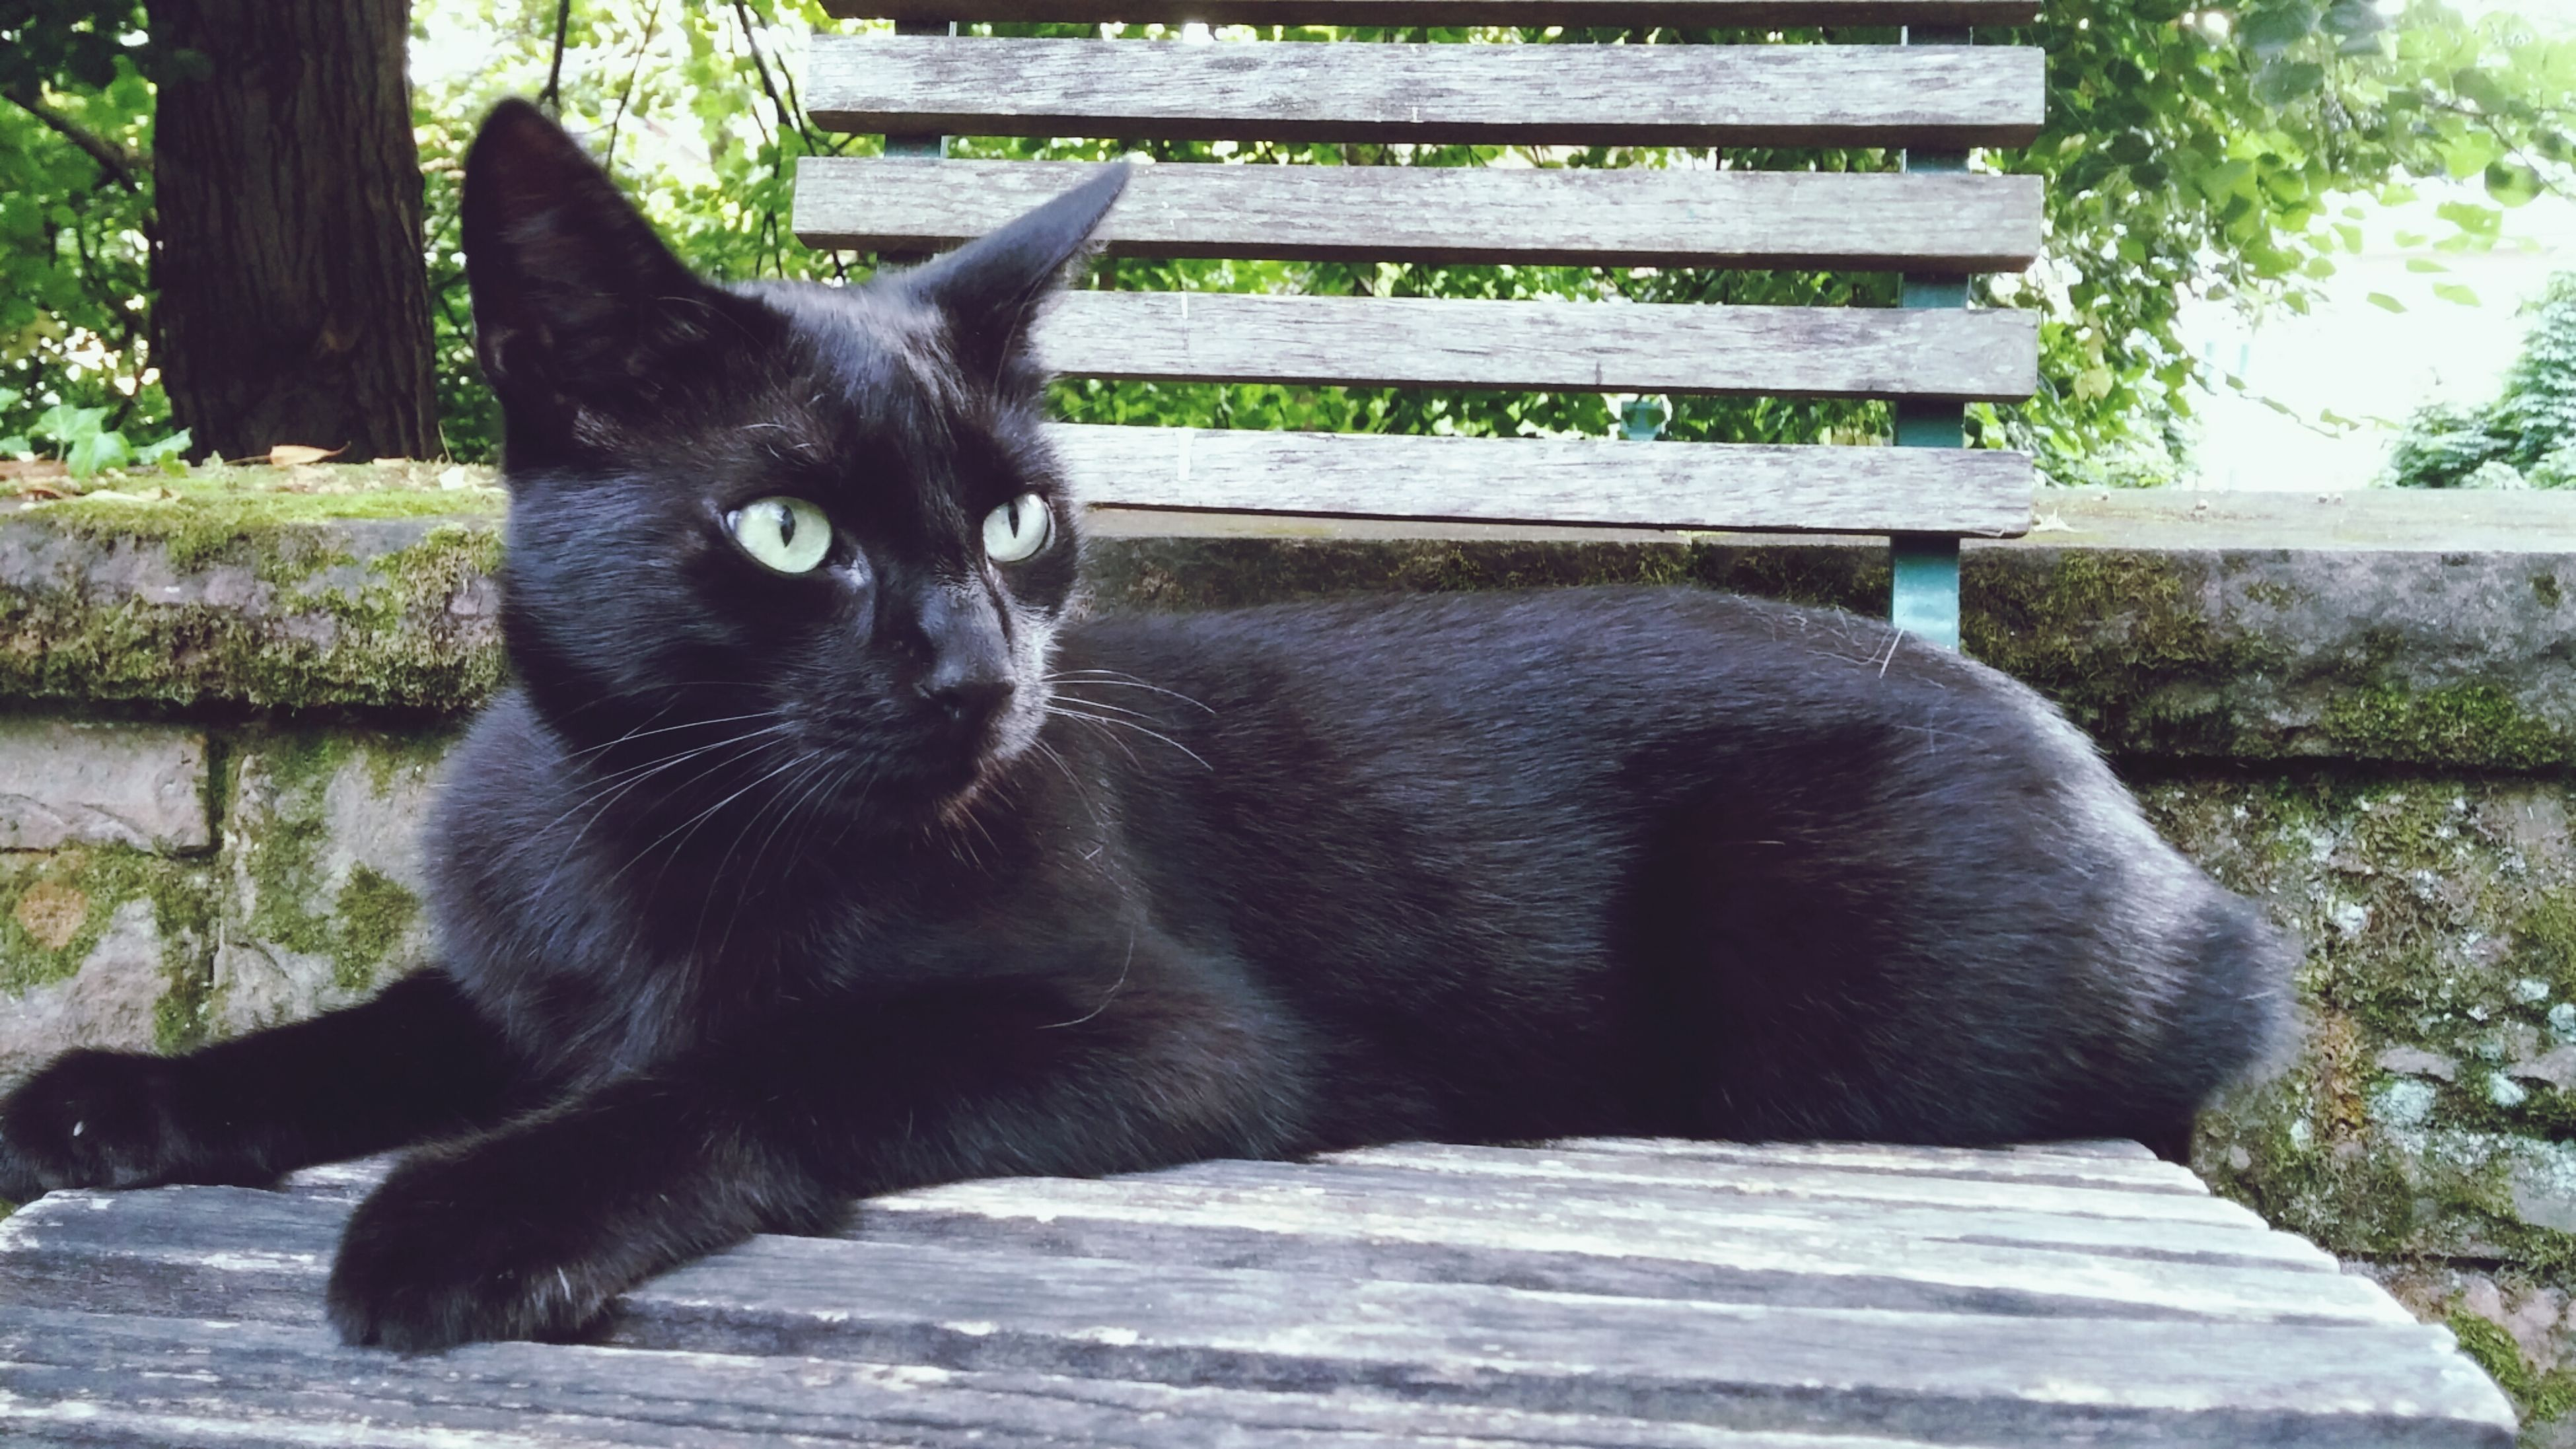 pets, mammal, animal themes, domestic animals, one animal, relaxation, black color, sitting, domestic cat, dog, cat, day, outdoors, looking away, no people, feline, sunlight, close-up, wood - material